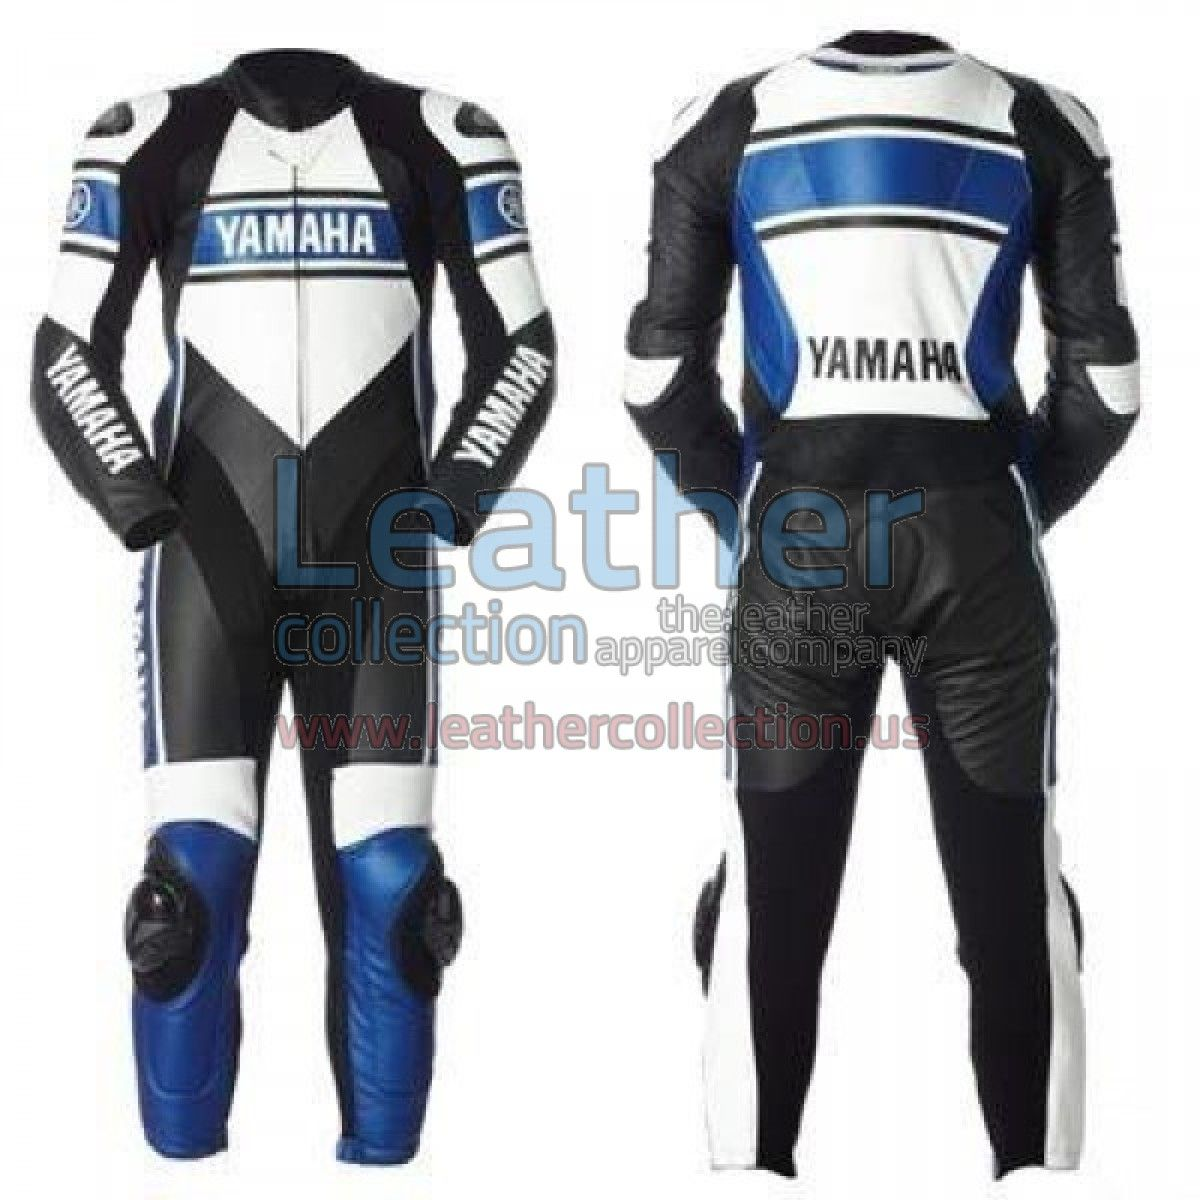 Yamaha Blue Motorbike Racing Leather Suit is especially designed for  professional riders to fulfil their biking